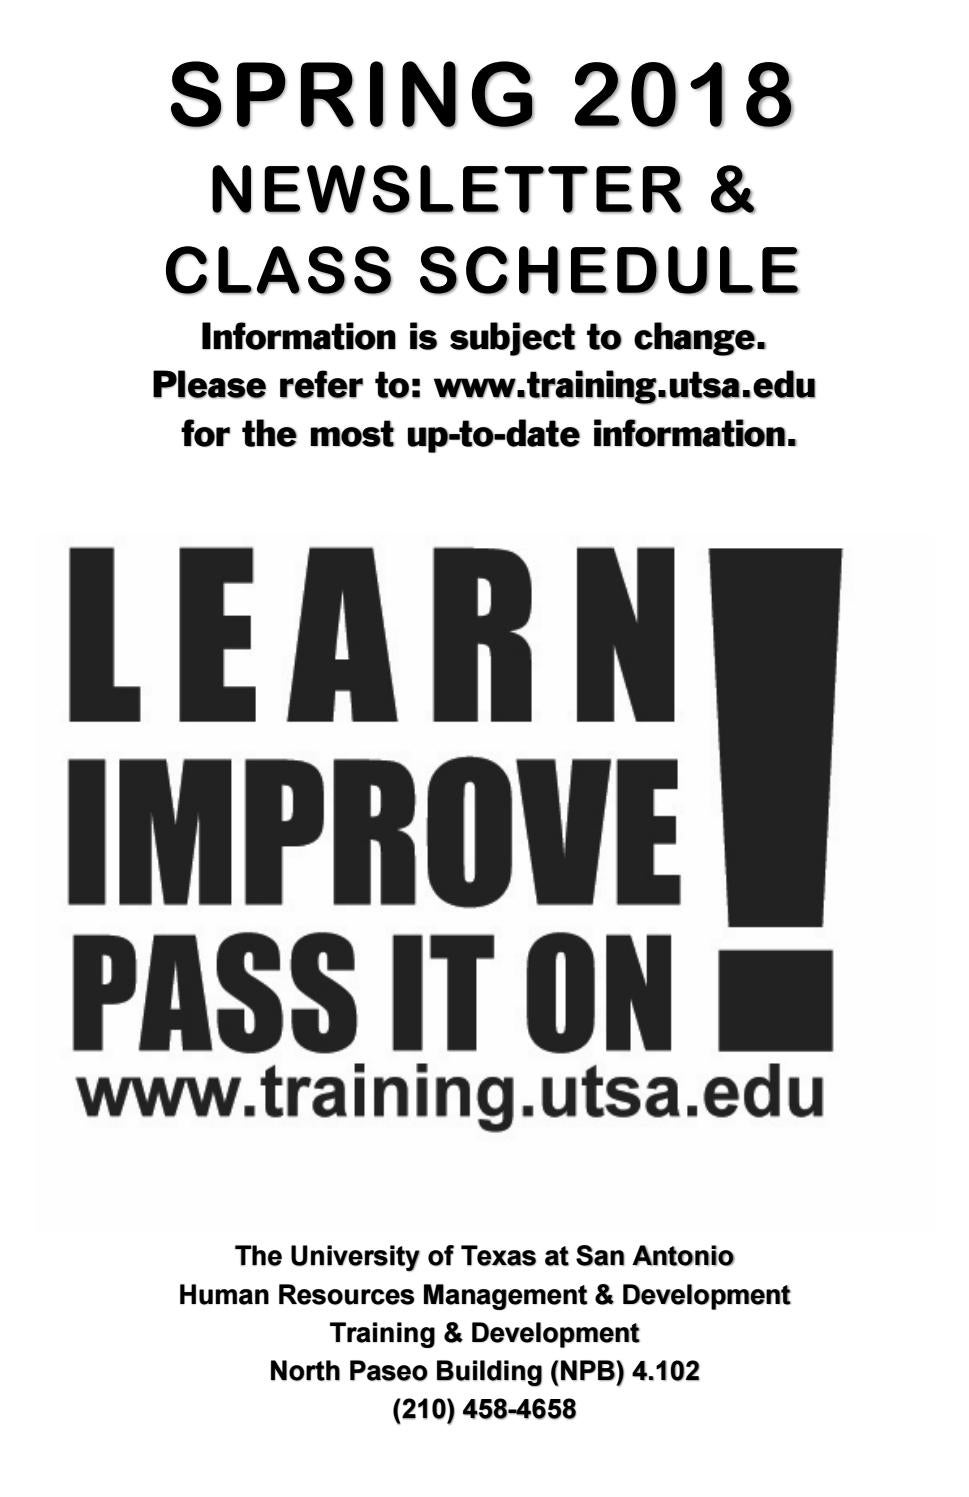 UTSA Training And Development Spring 2018 Newsletter And Class Schedule By  UTSA   The University Of Texas At San Antonio   Issuu